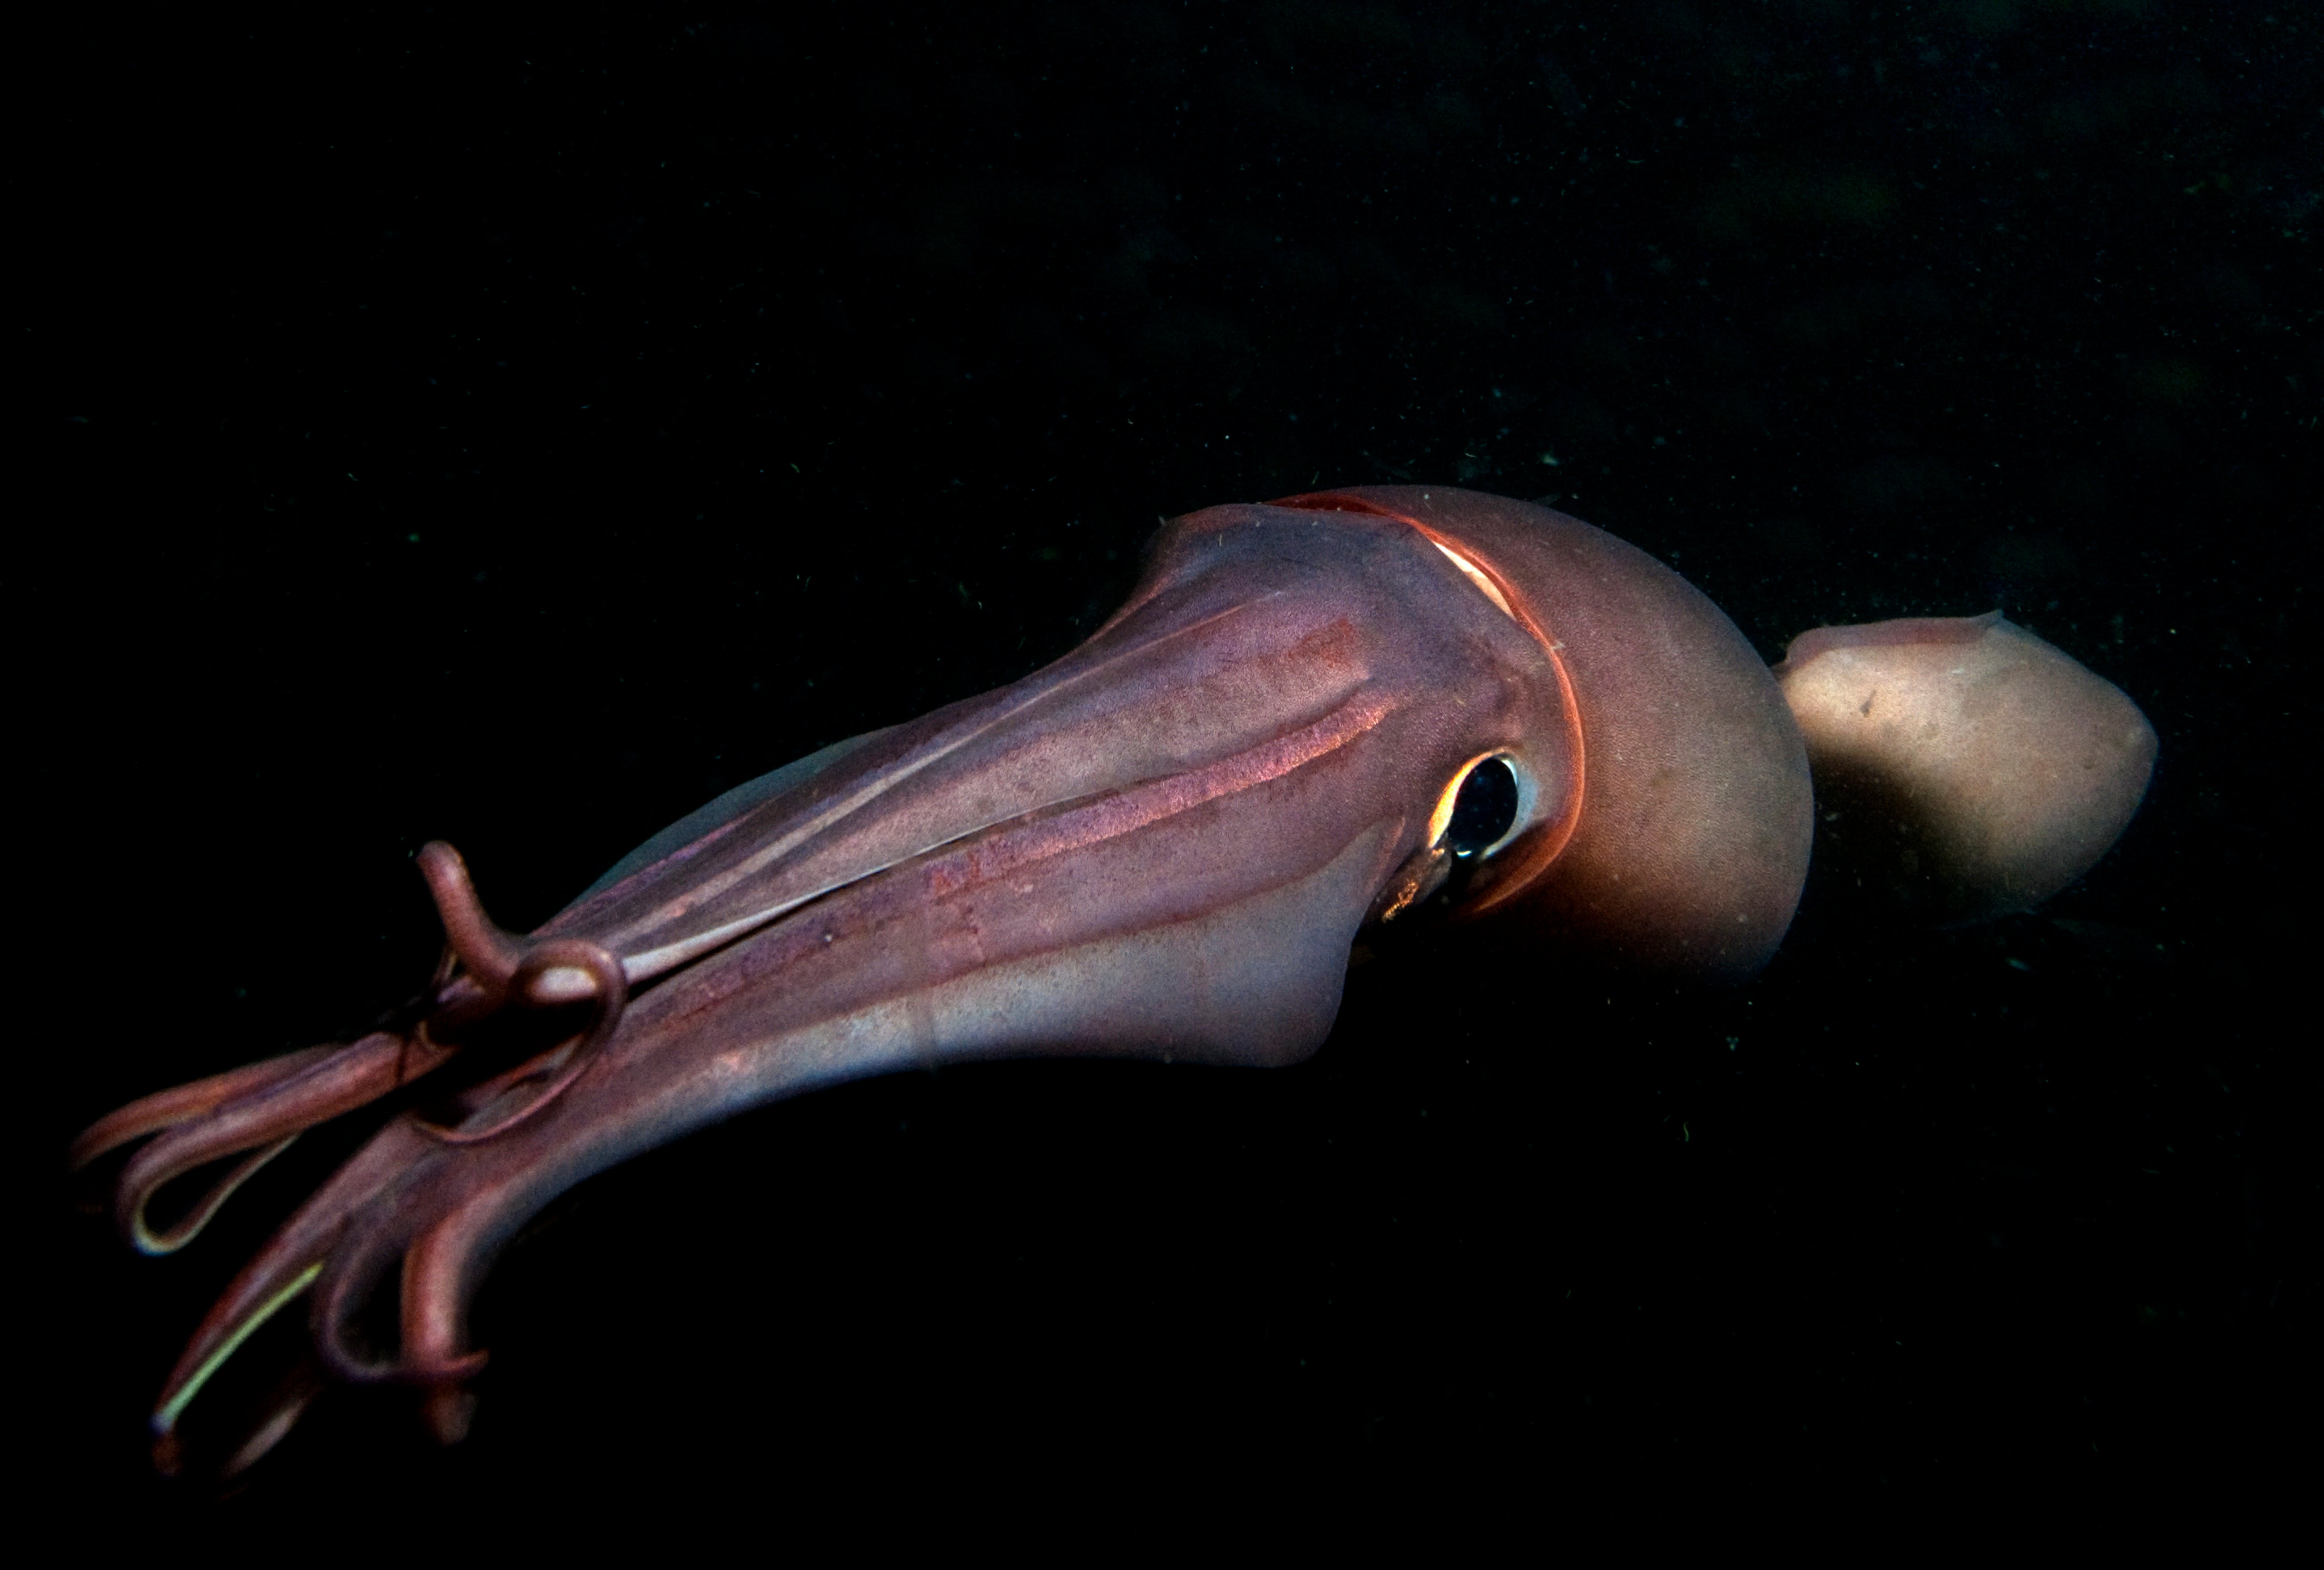 Squid's Glowing Skin Patterns May Be Code